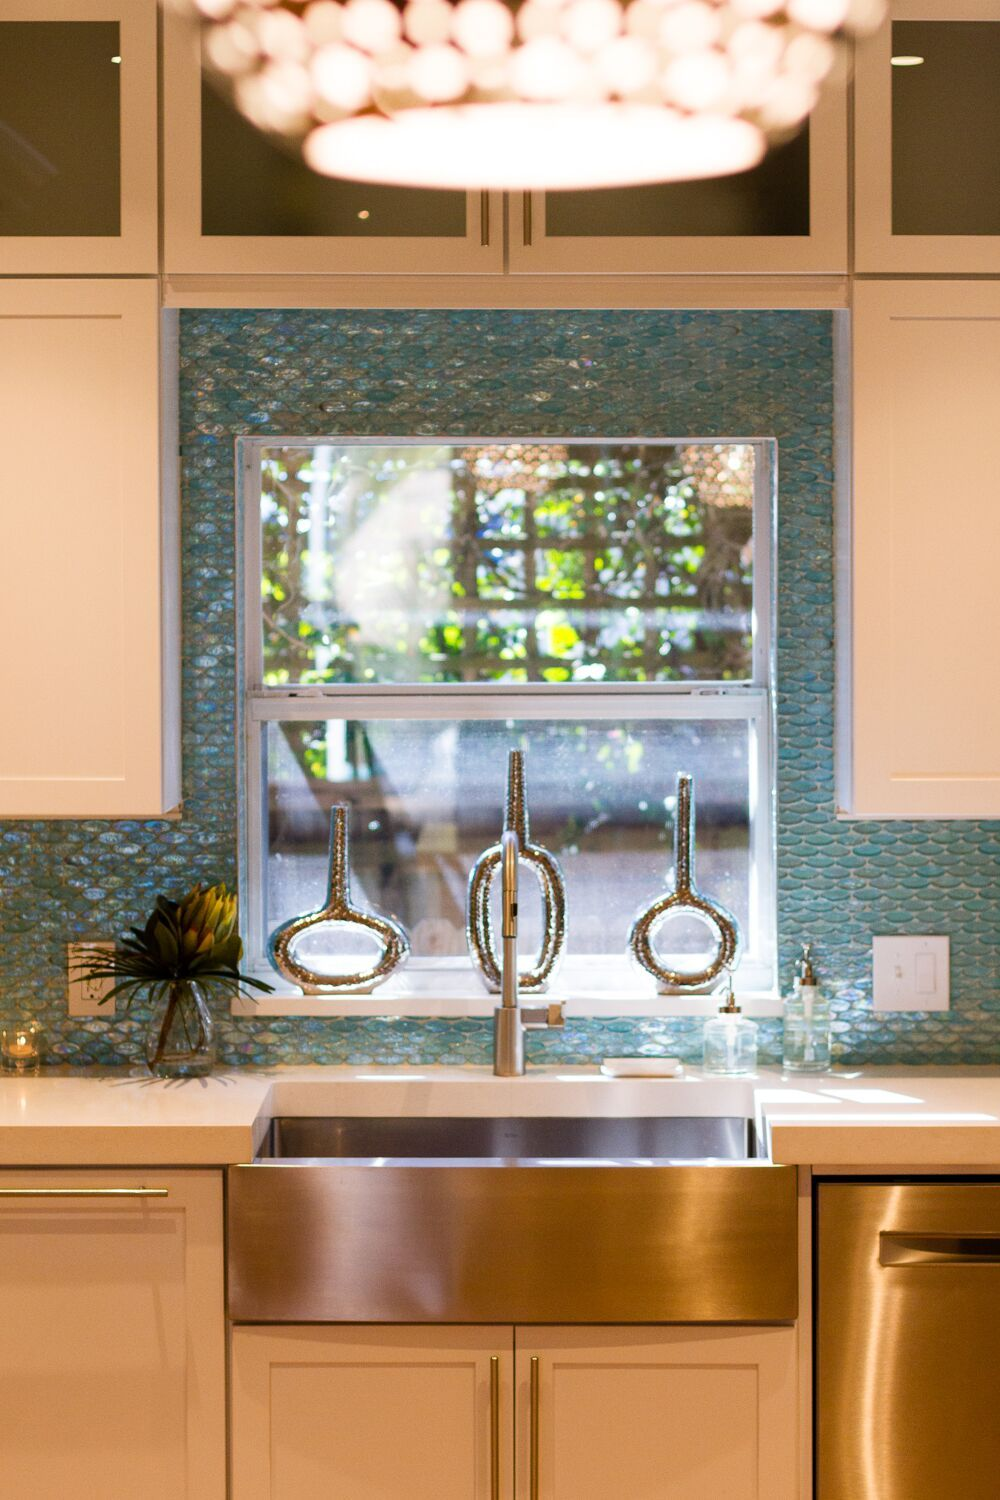 Kitchen Cabinet Interior Design: Pin By Jeni Hickson On PROJECTS BY INTERIOR BLISS DESIGN